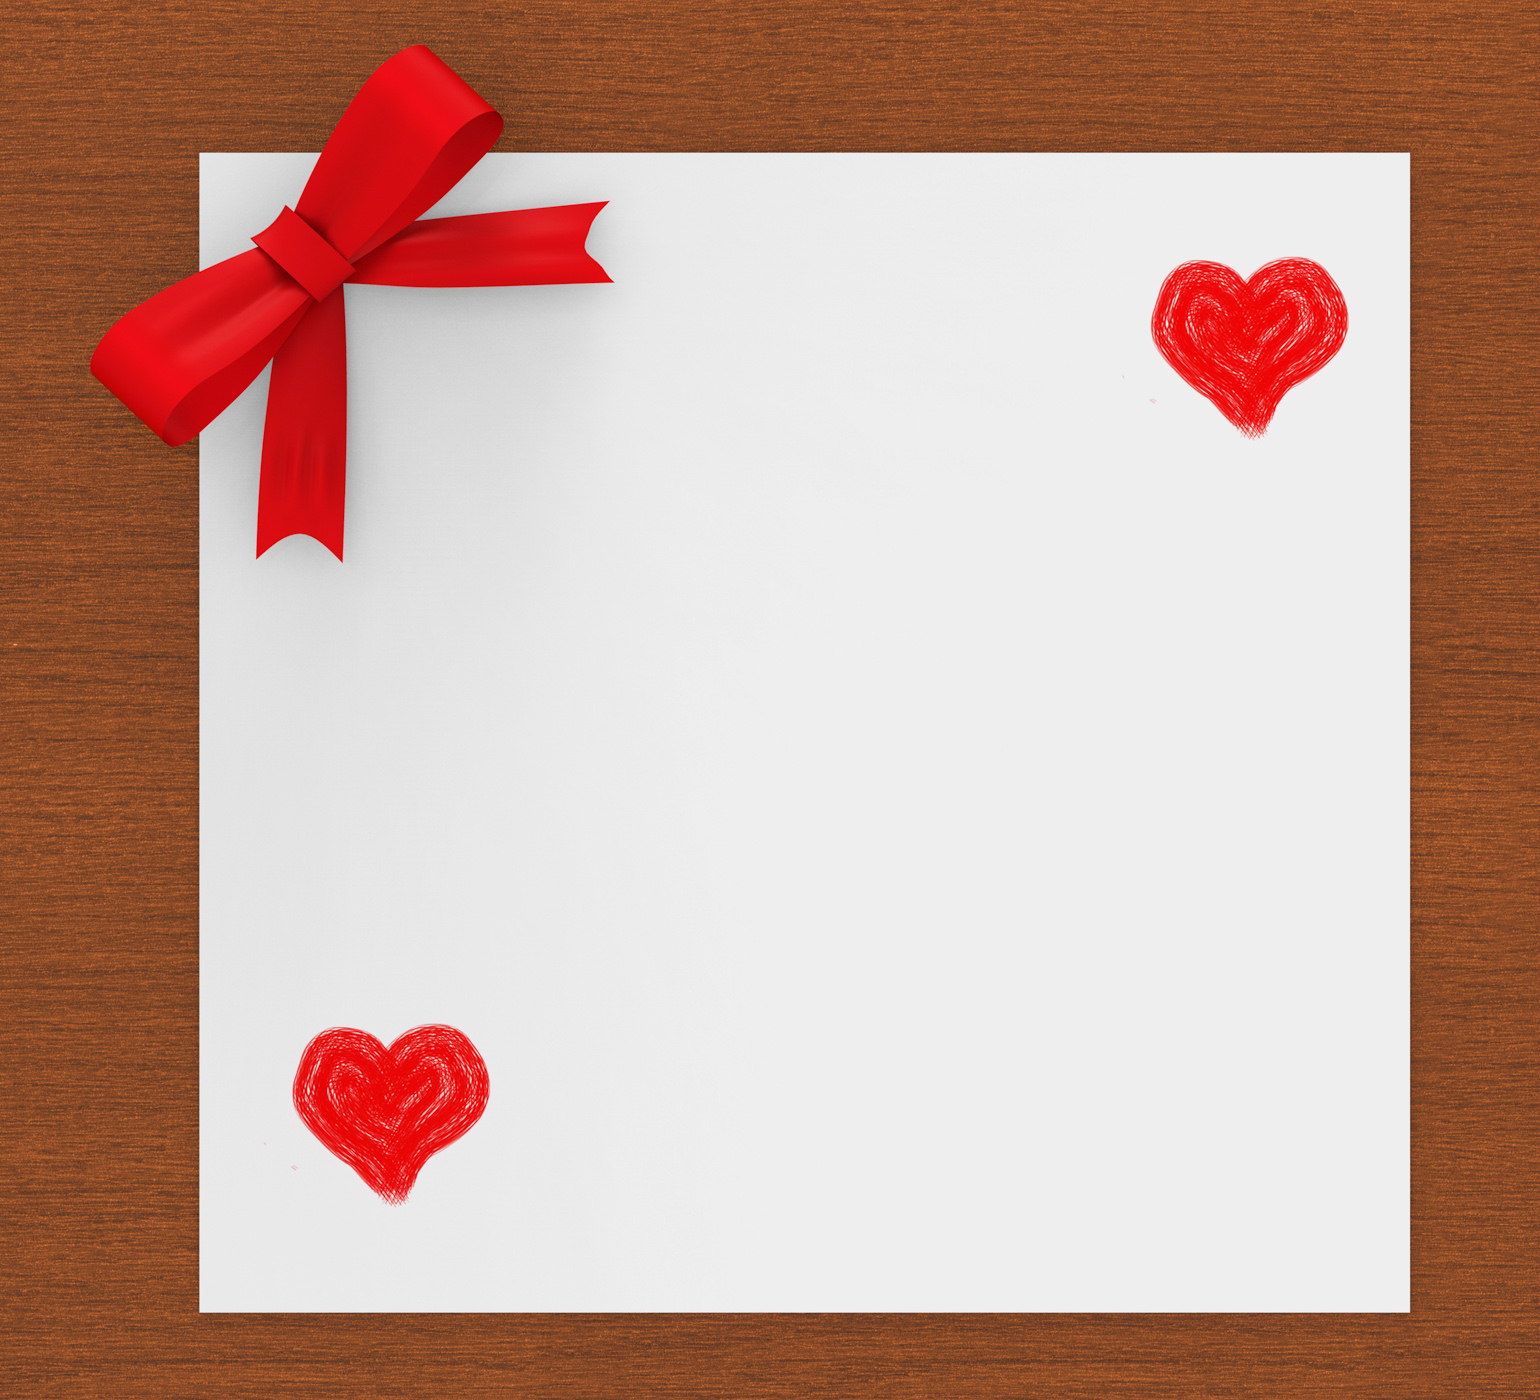 Heart copyspace indicates valentines day and copy-space photo